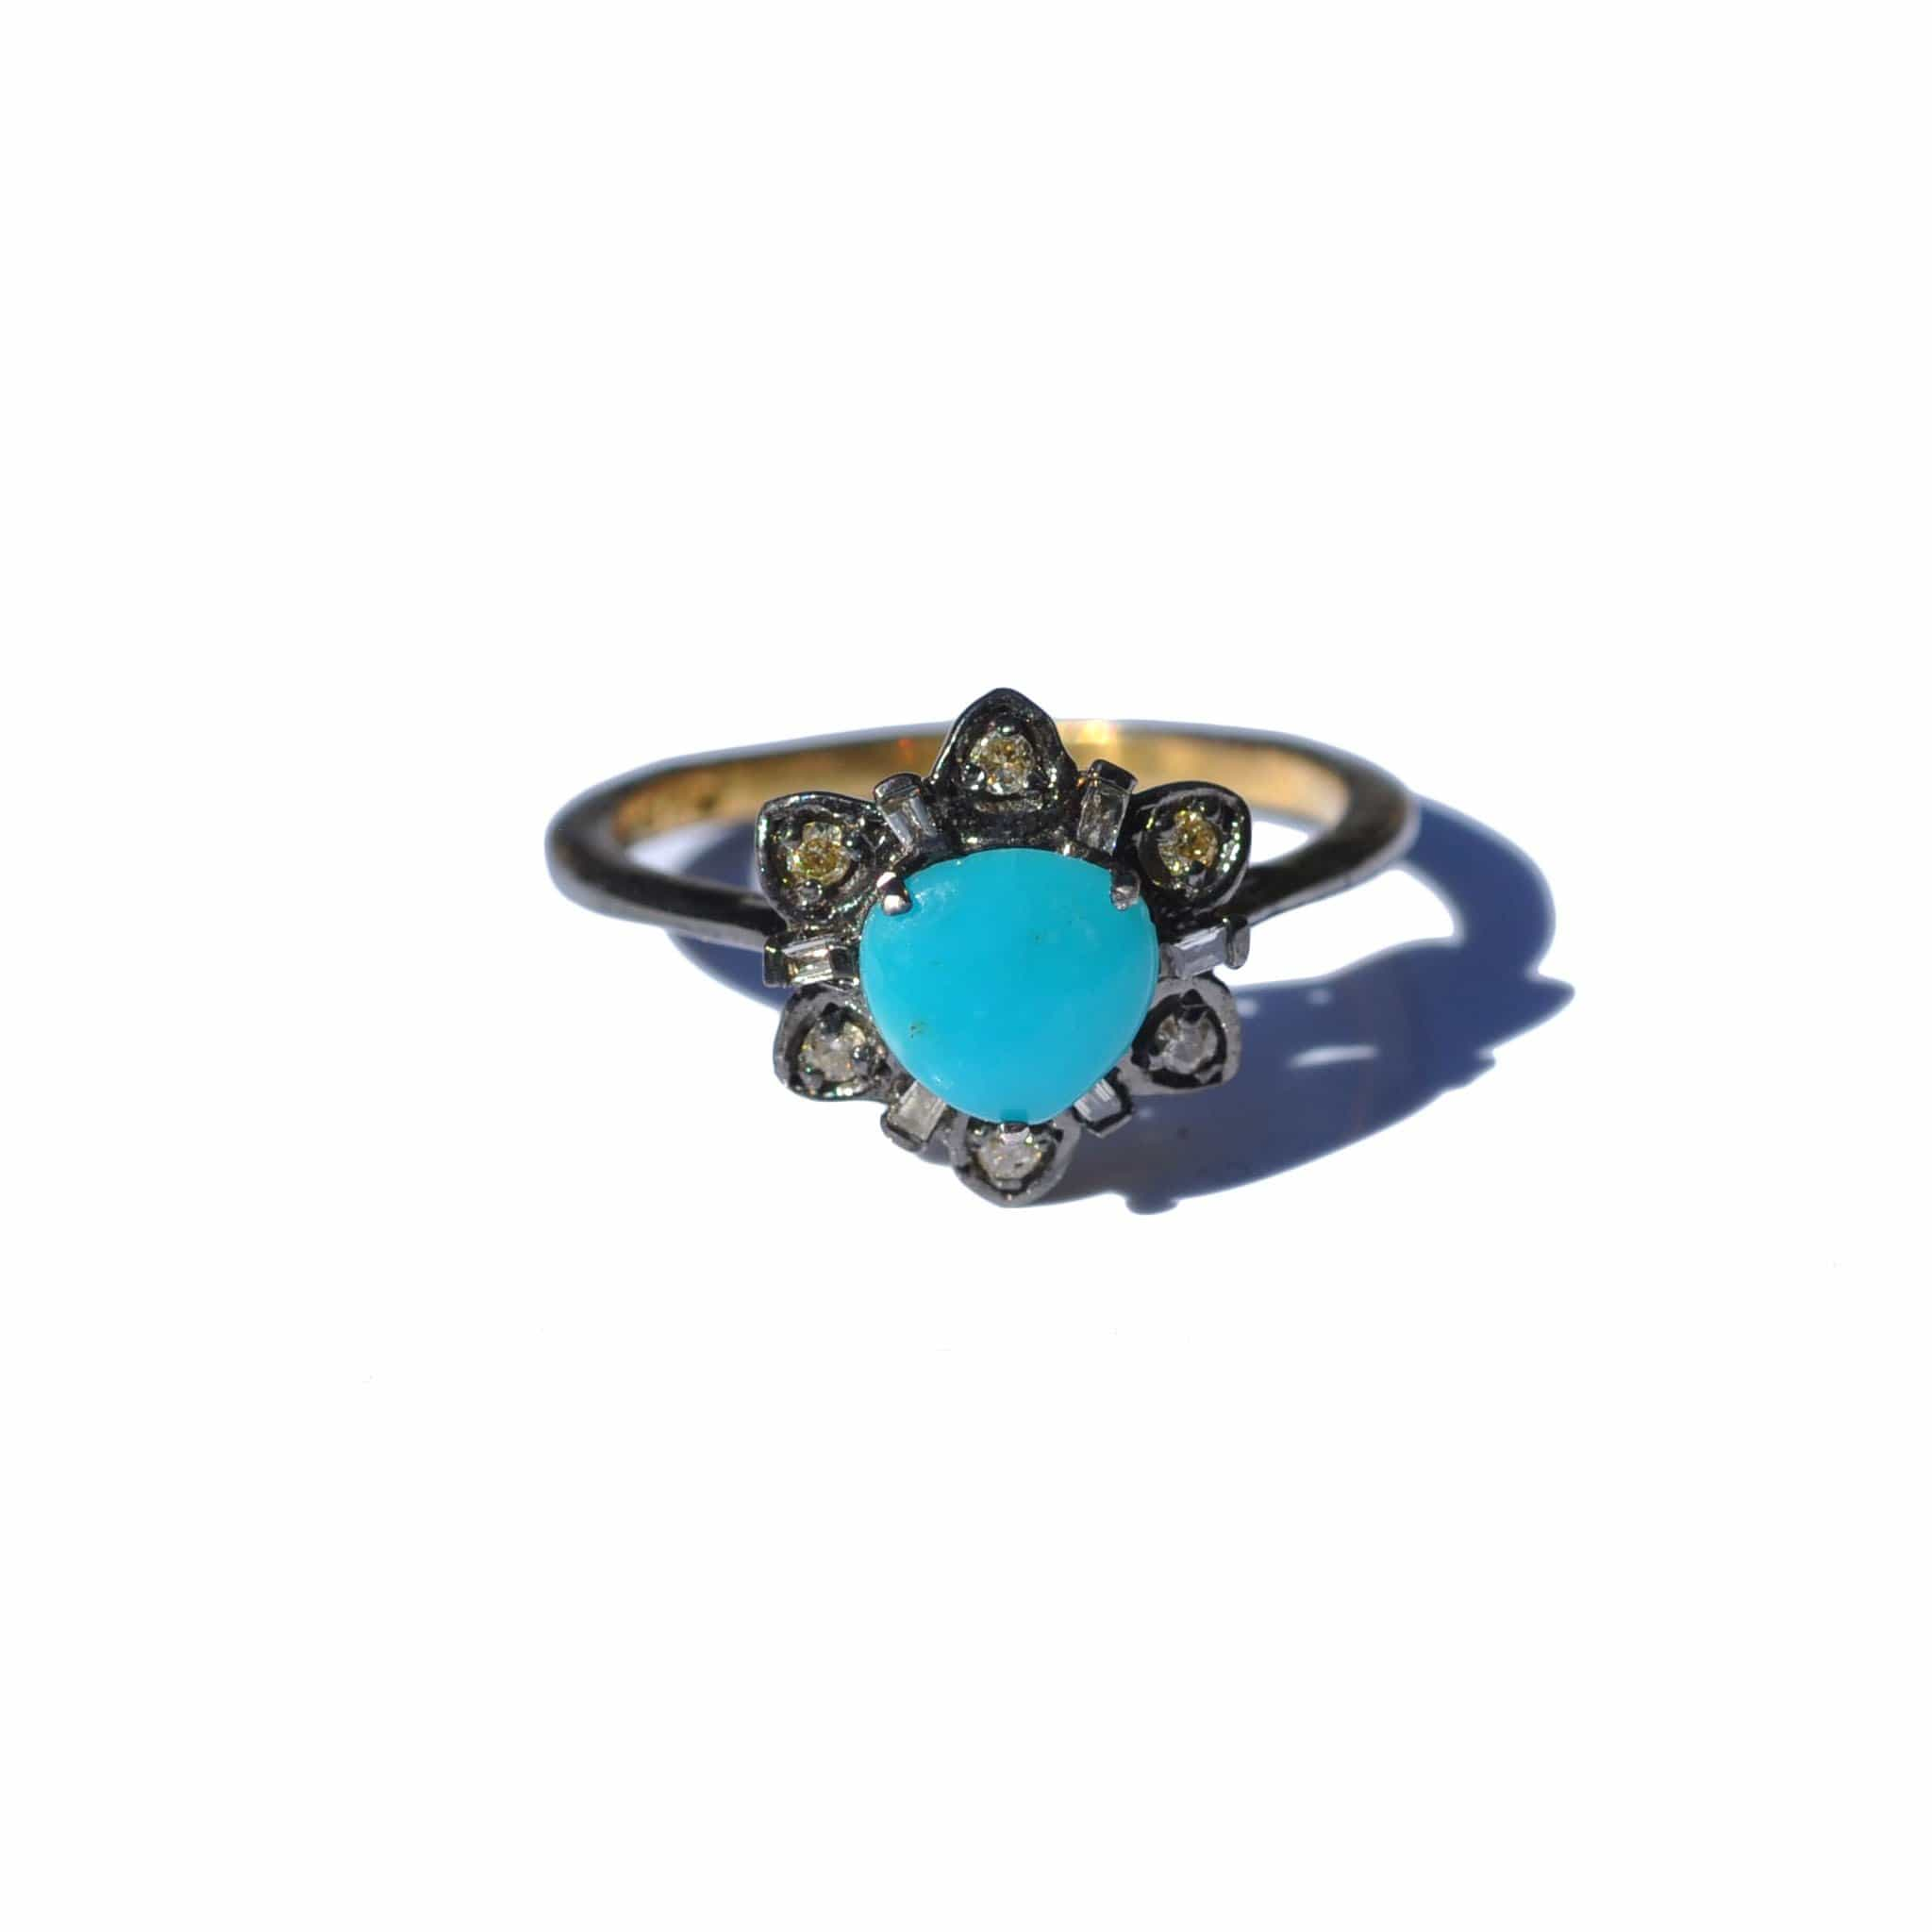 cz and stone with gold accessories on from retro antique green electroplating in blue fashion new women jewelry wholesale big silver for beaded item male vintage luxury turquoise men rings diamond ring bohemian